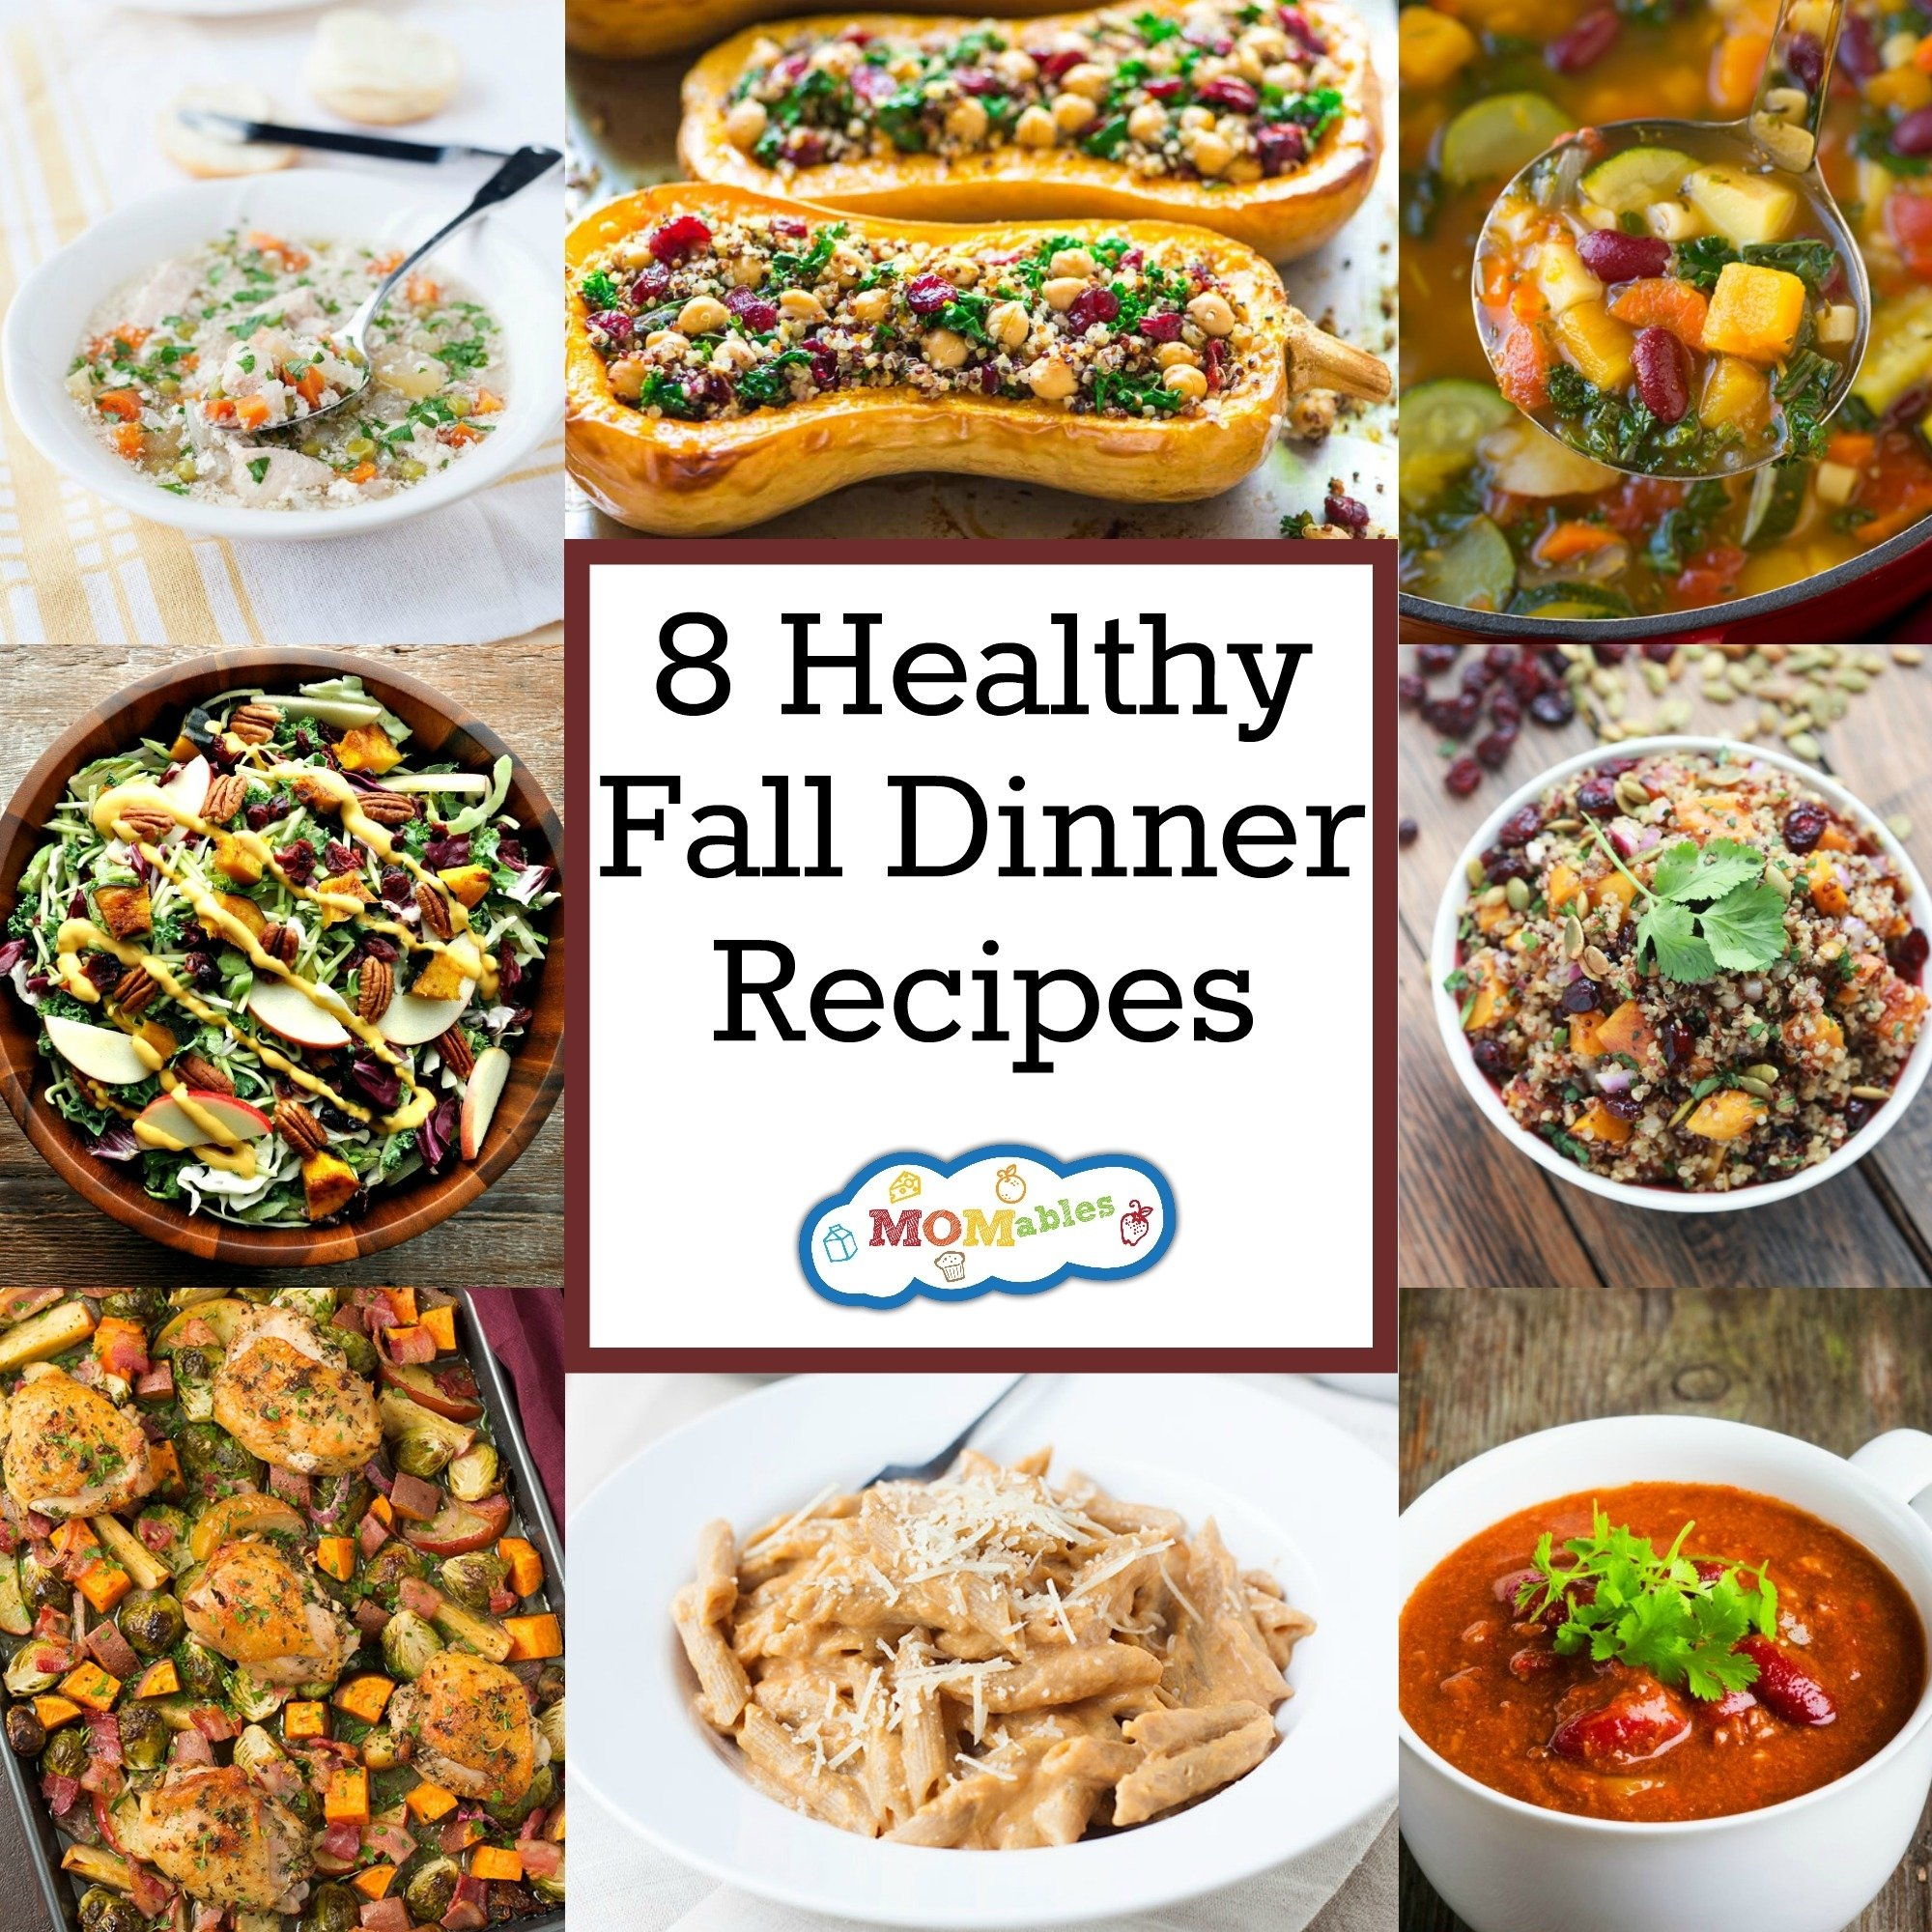 8 healthy fall dinner recipes - momables® - good food. plan on it!